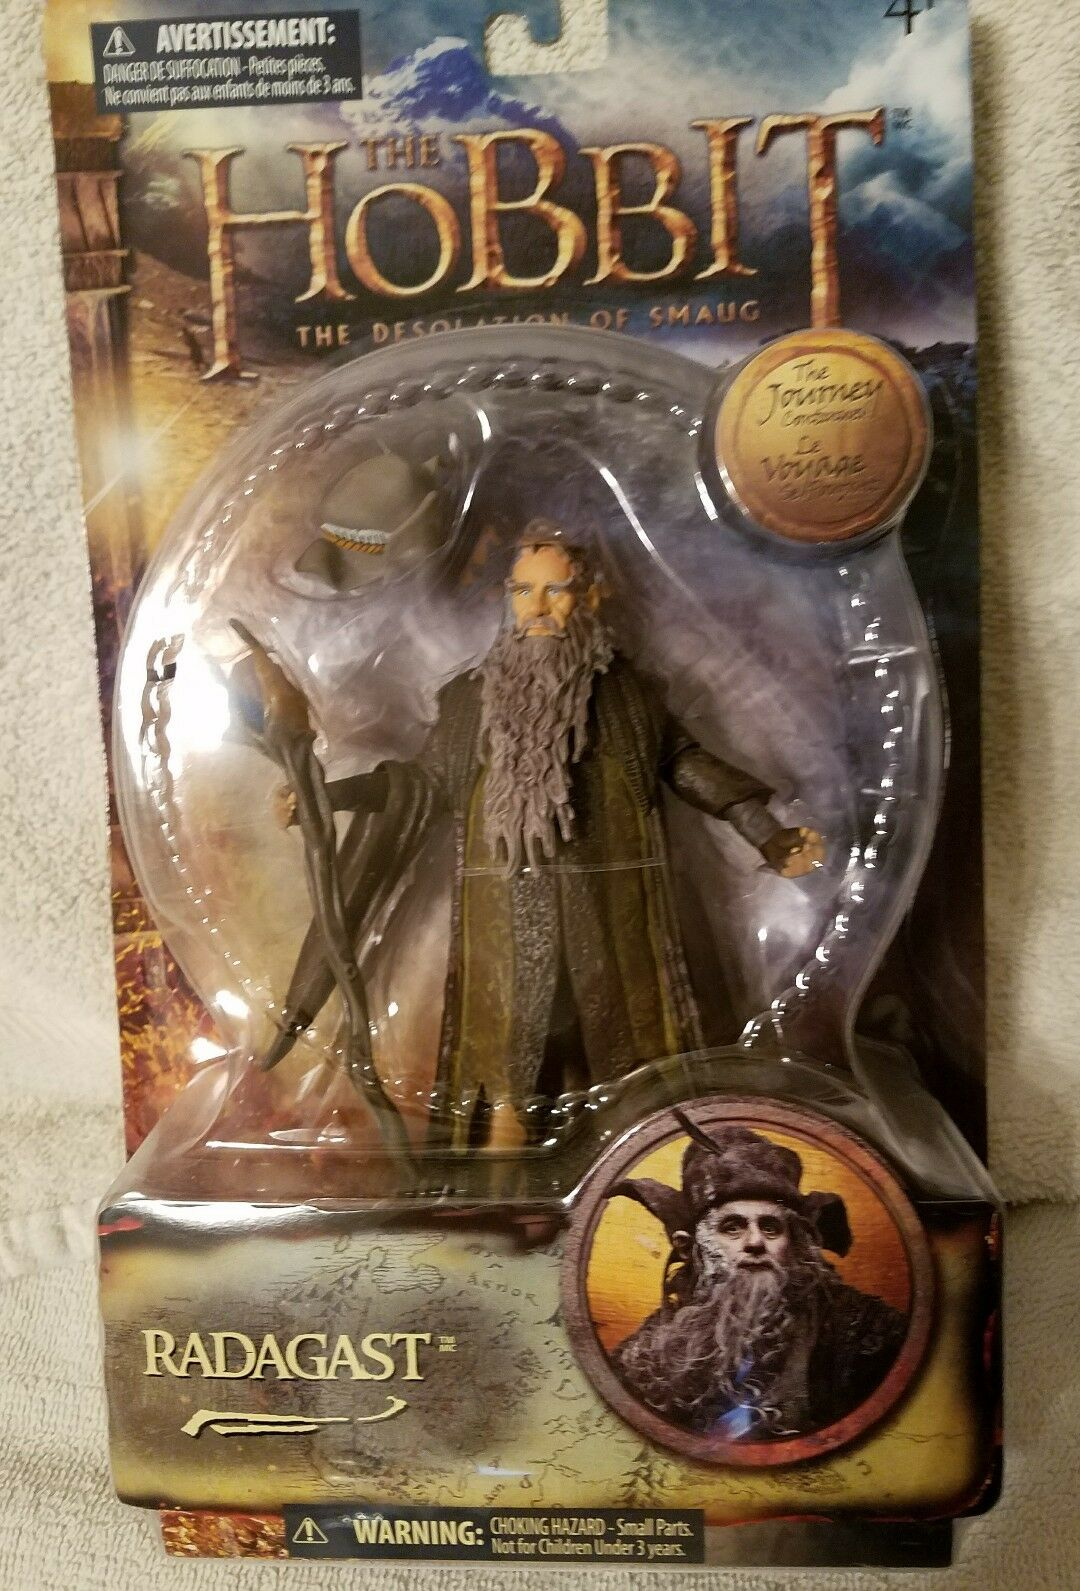 Collectible The Hobbit RADAGAST--THE Desolation of Smaug Action Figure